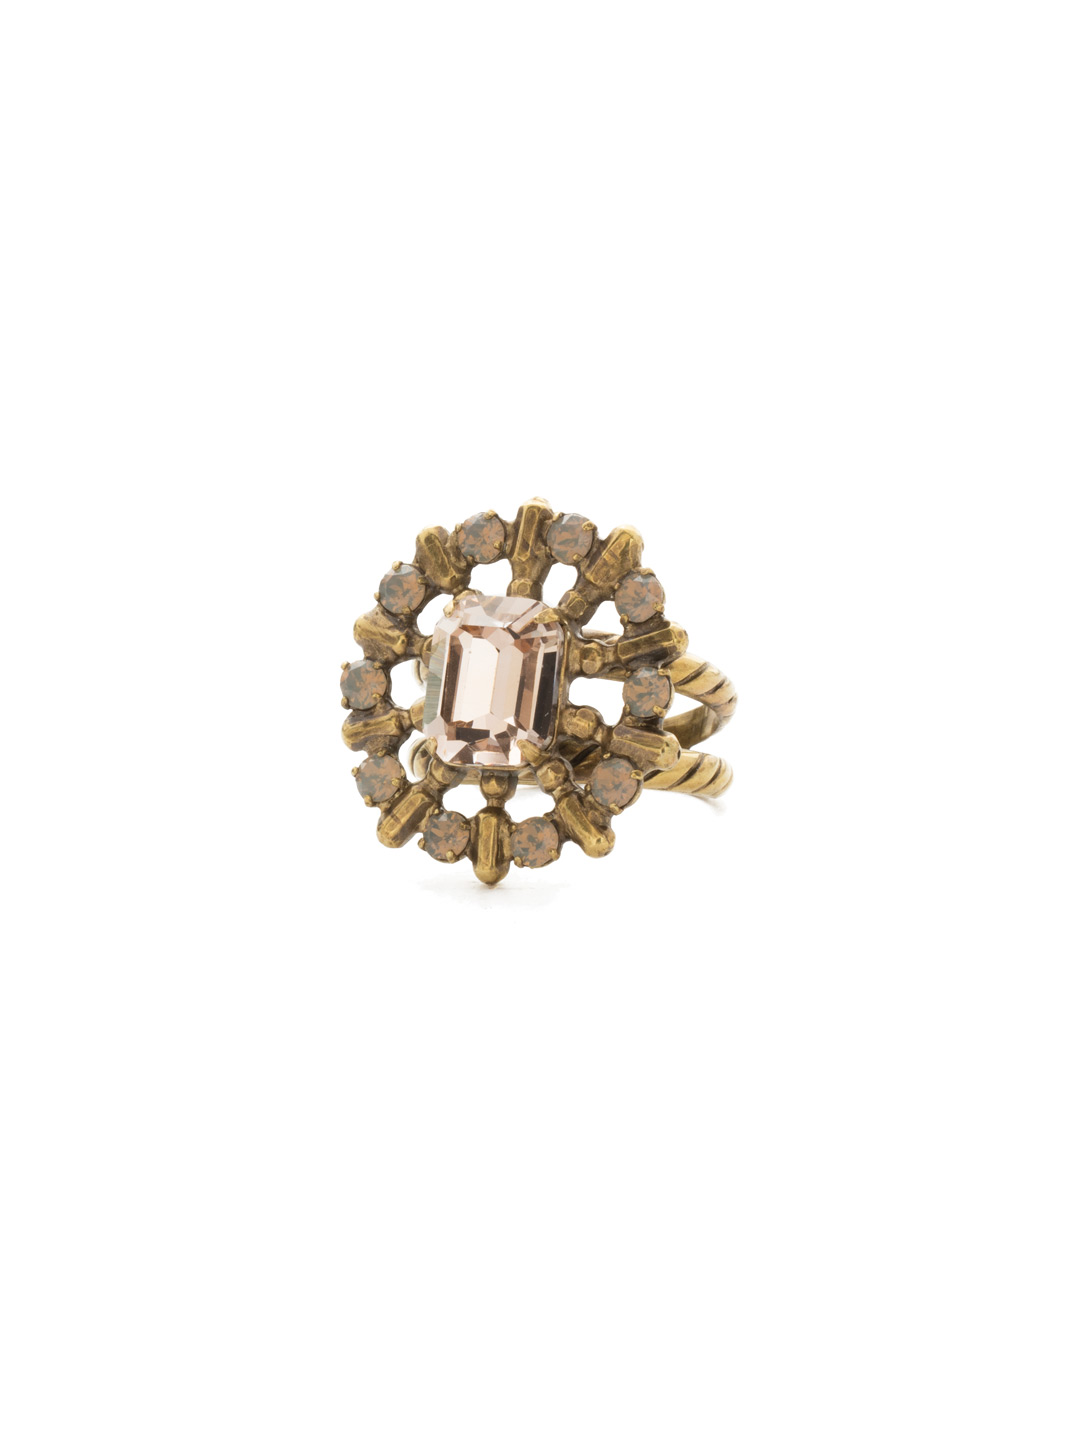 Fashion Jewelry Bold Pride Brooch Set In A Goldtone Finish